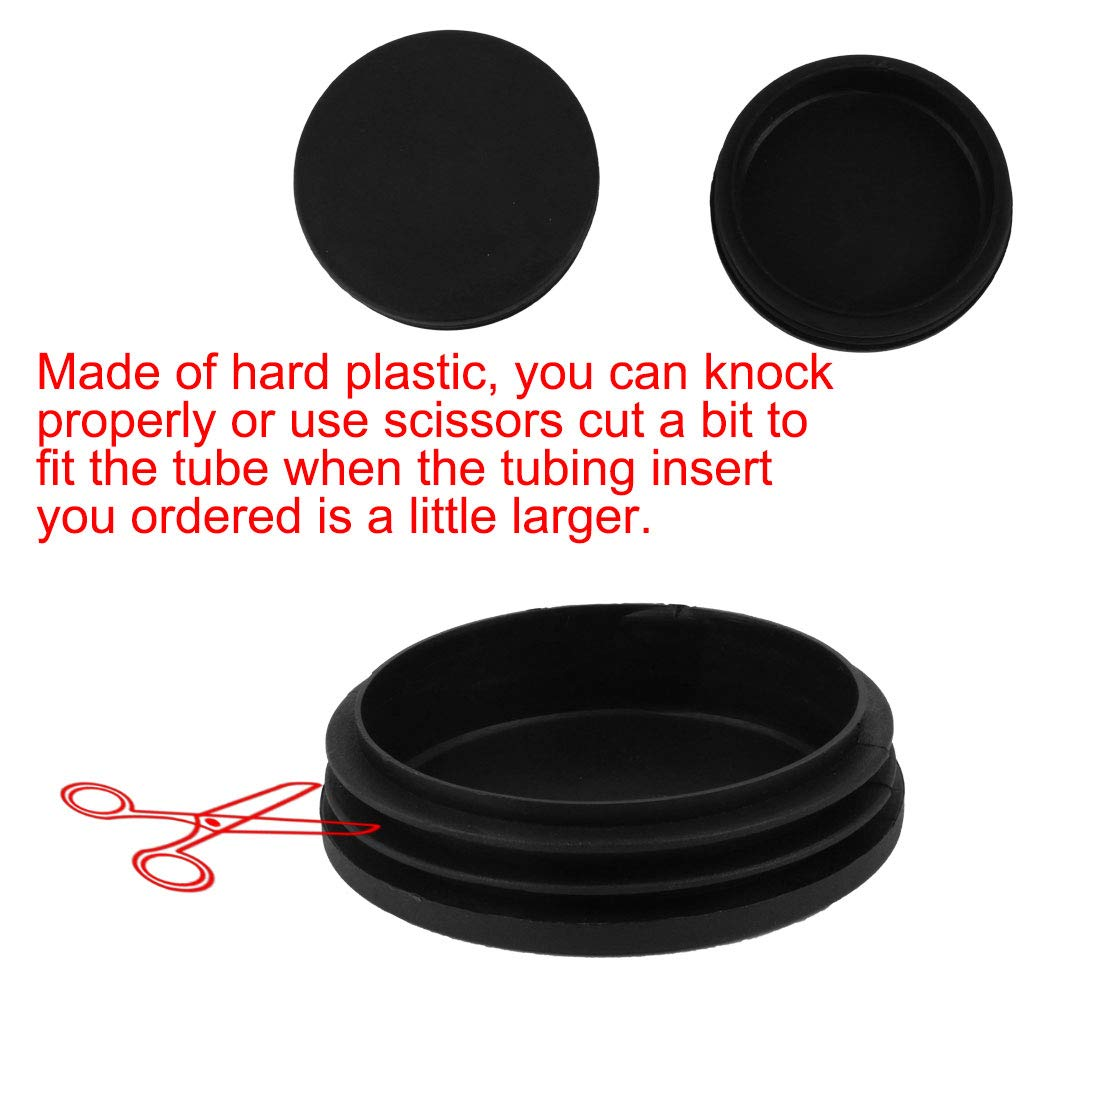 uxcell 50mm Diameter Plastic Cap Chair Table Legs Round Tube Insert 50 Pcs by uxcell (Image #6)